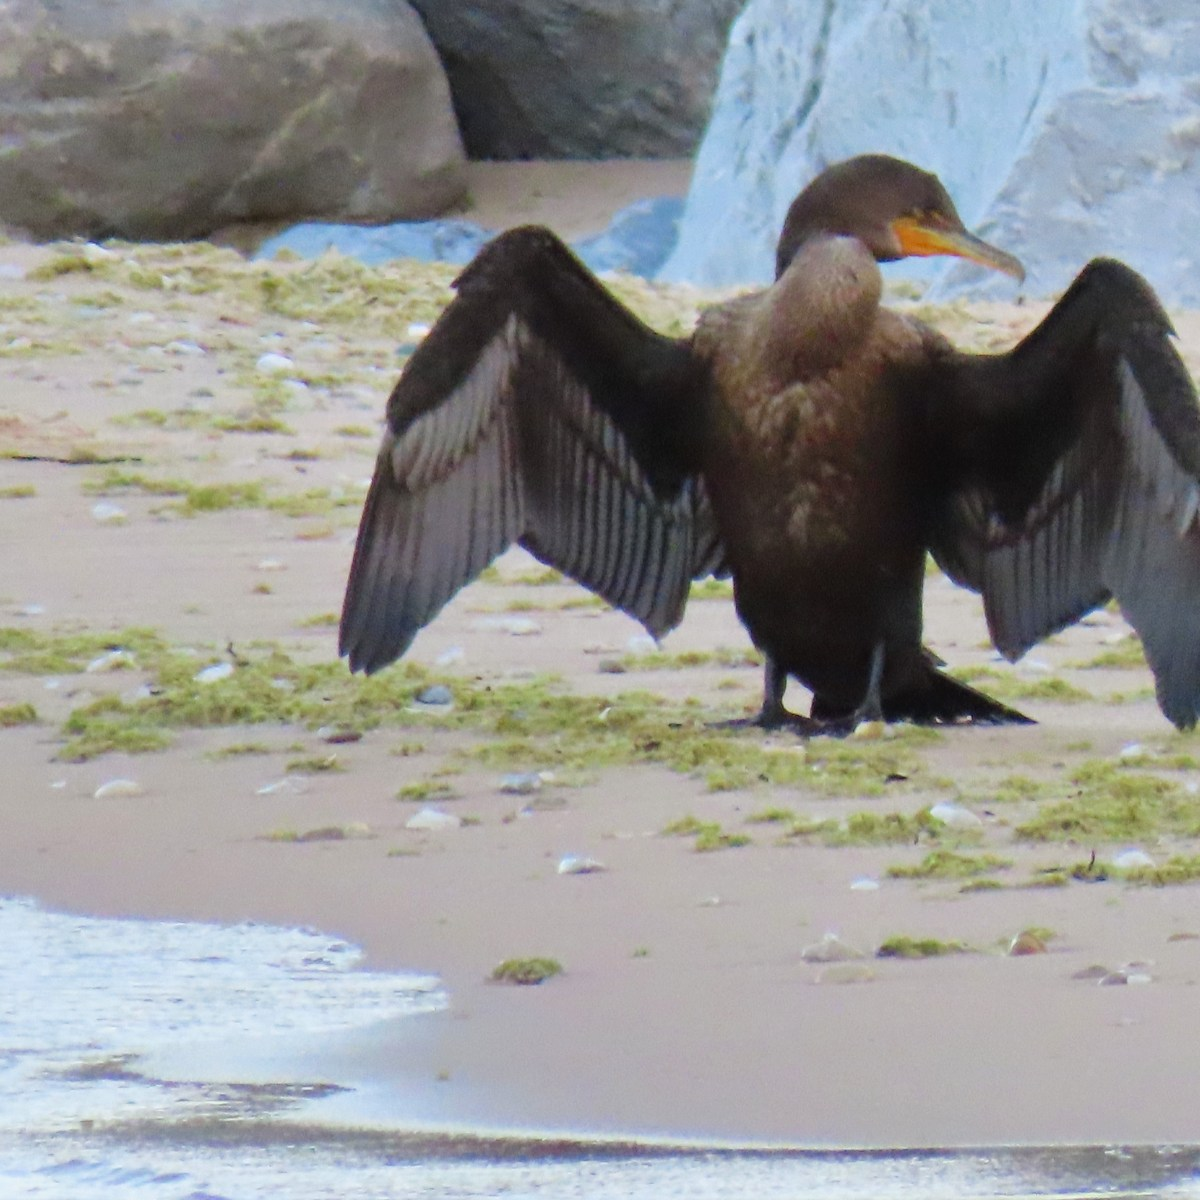 Front view of cormorant with wings spread